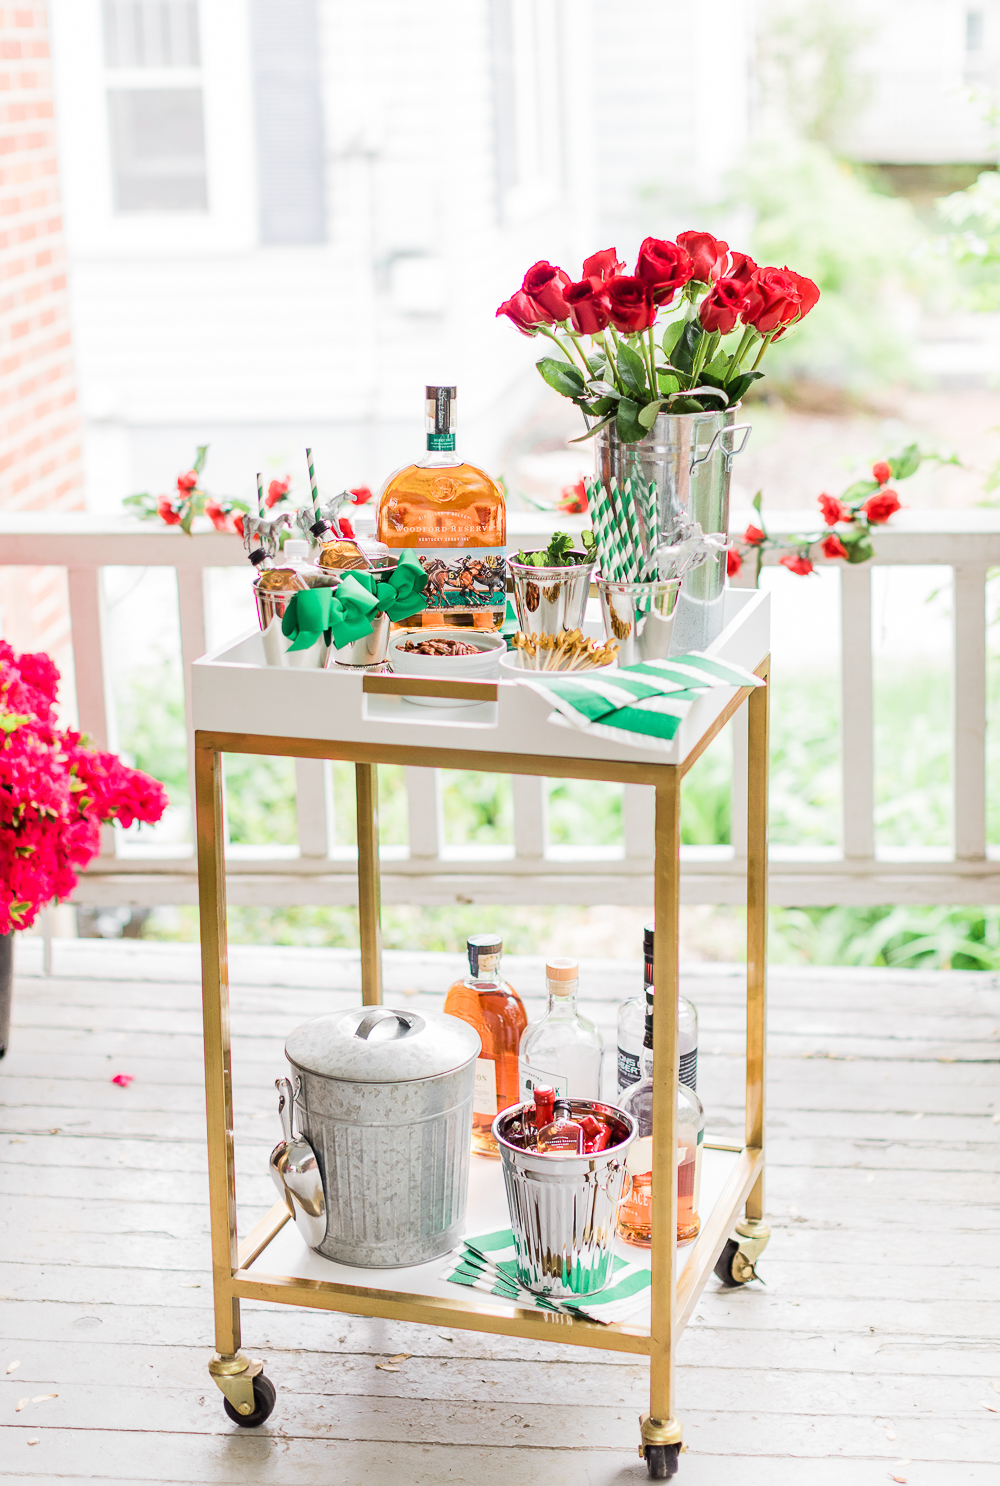 Derby Day Bar Cart, Kentucky Derby Bar Cart, Derby Day Bar Cart and Frozen Mint Julep Punch Recipe by Stephanie Ziajka from the popular southern lifestyle blog Diary of a Debutante